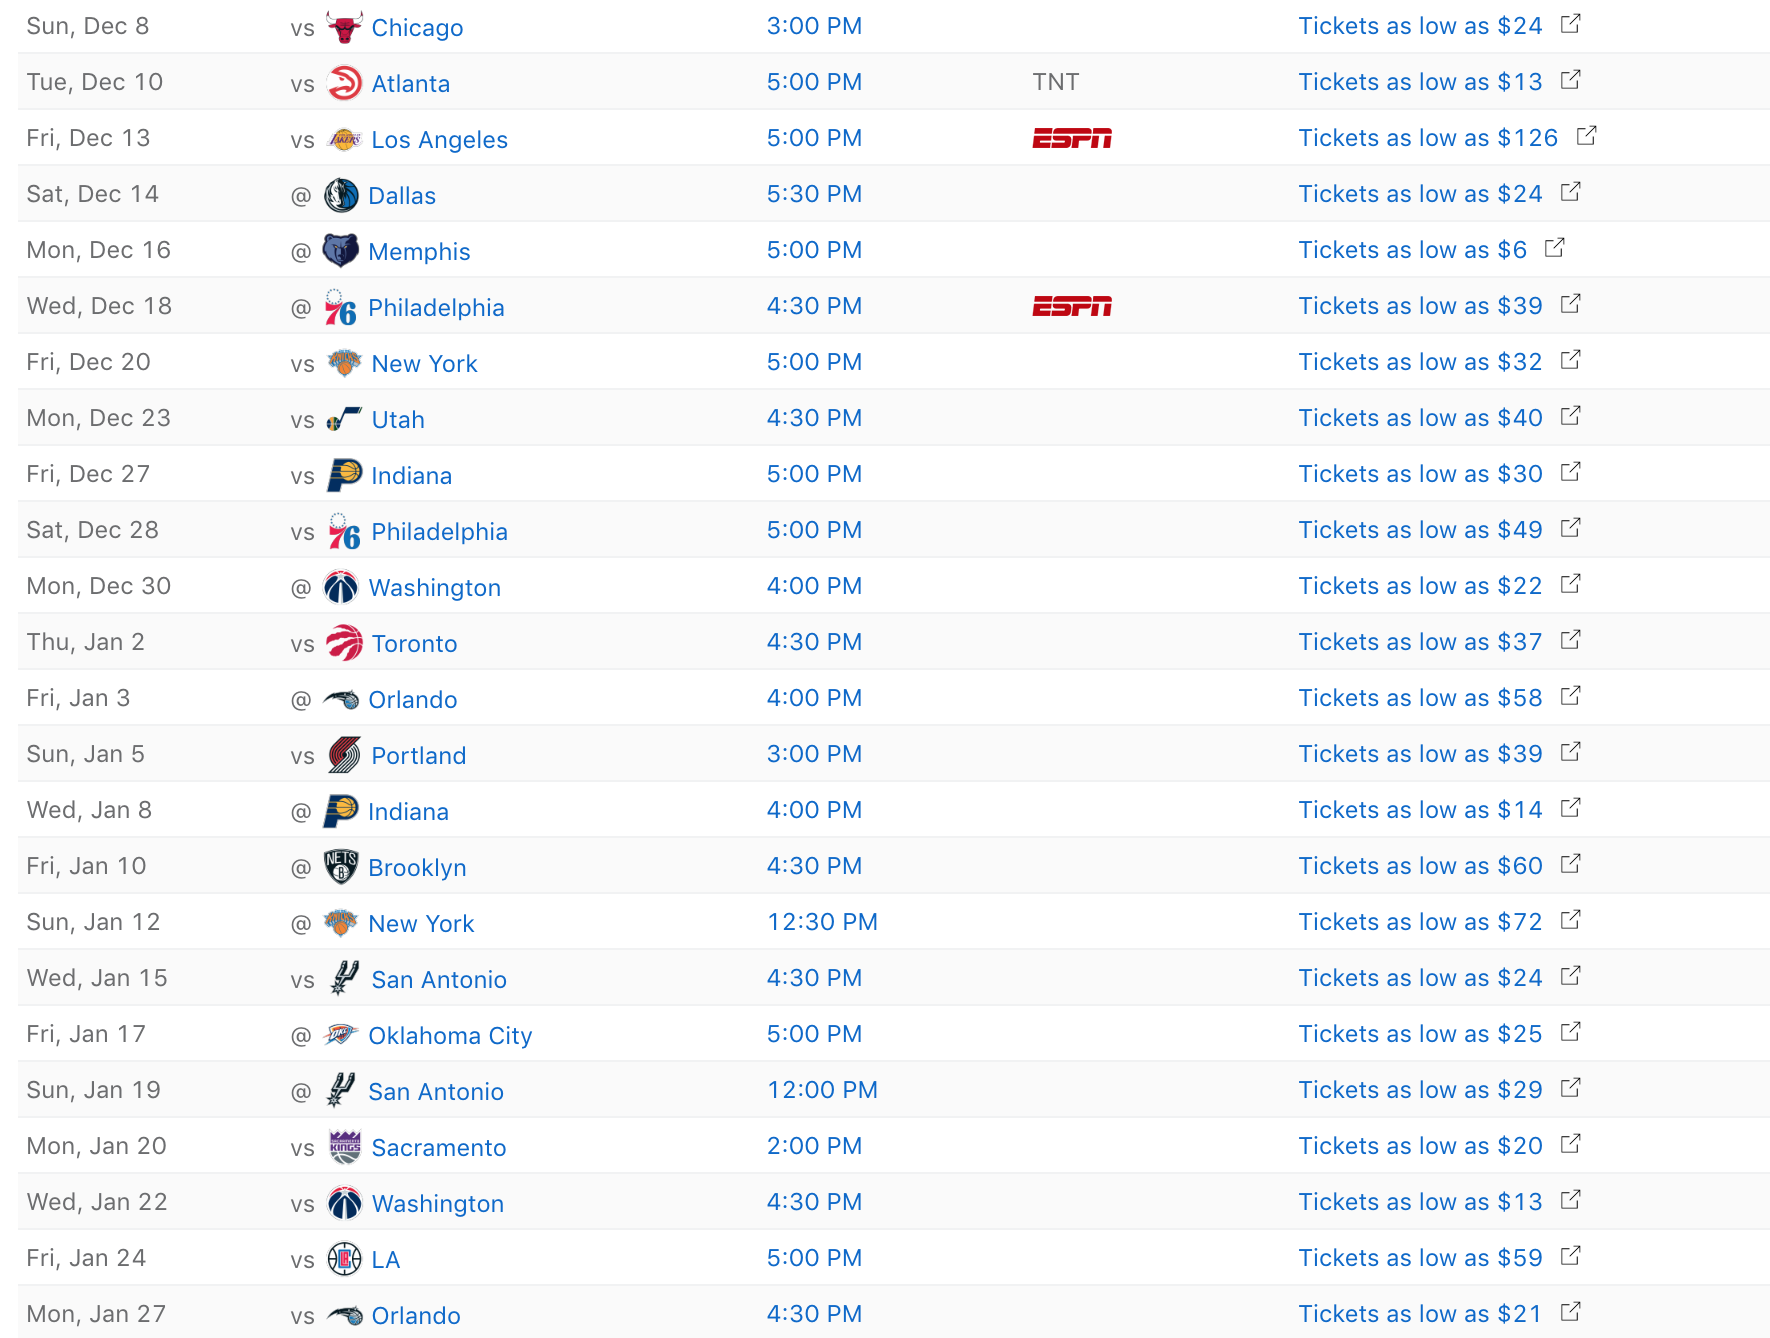 Miami Heat 2019-20 Regular Season Schedule